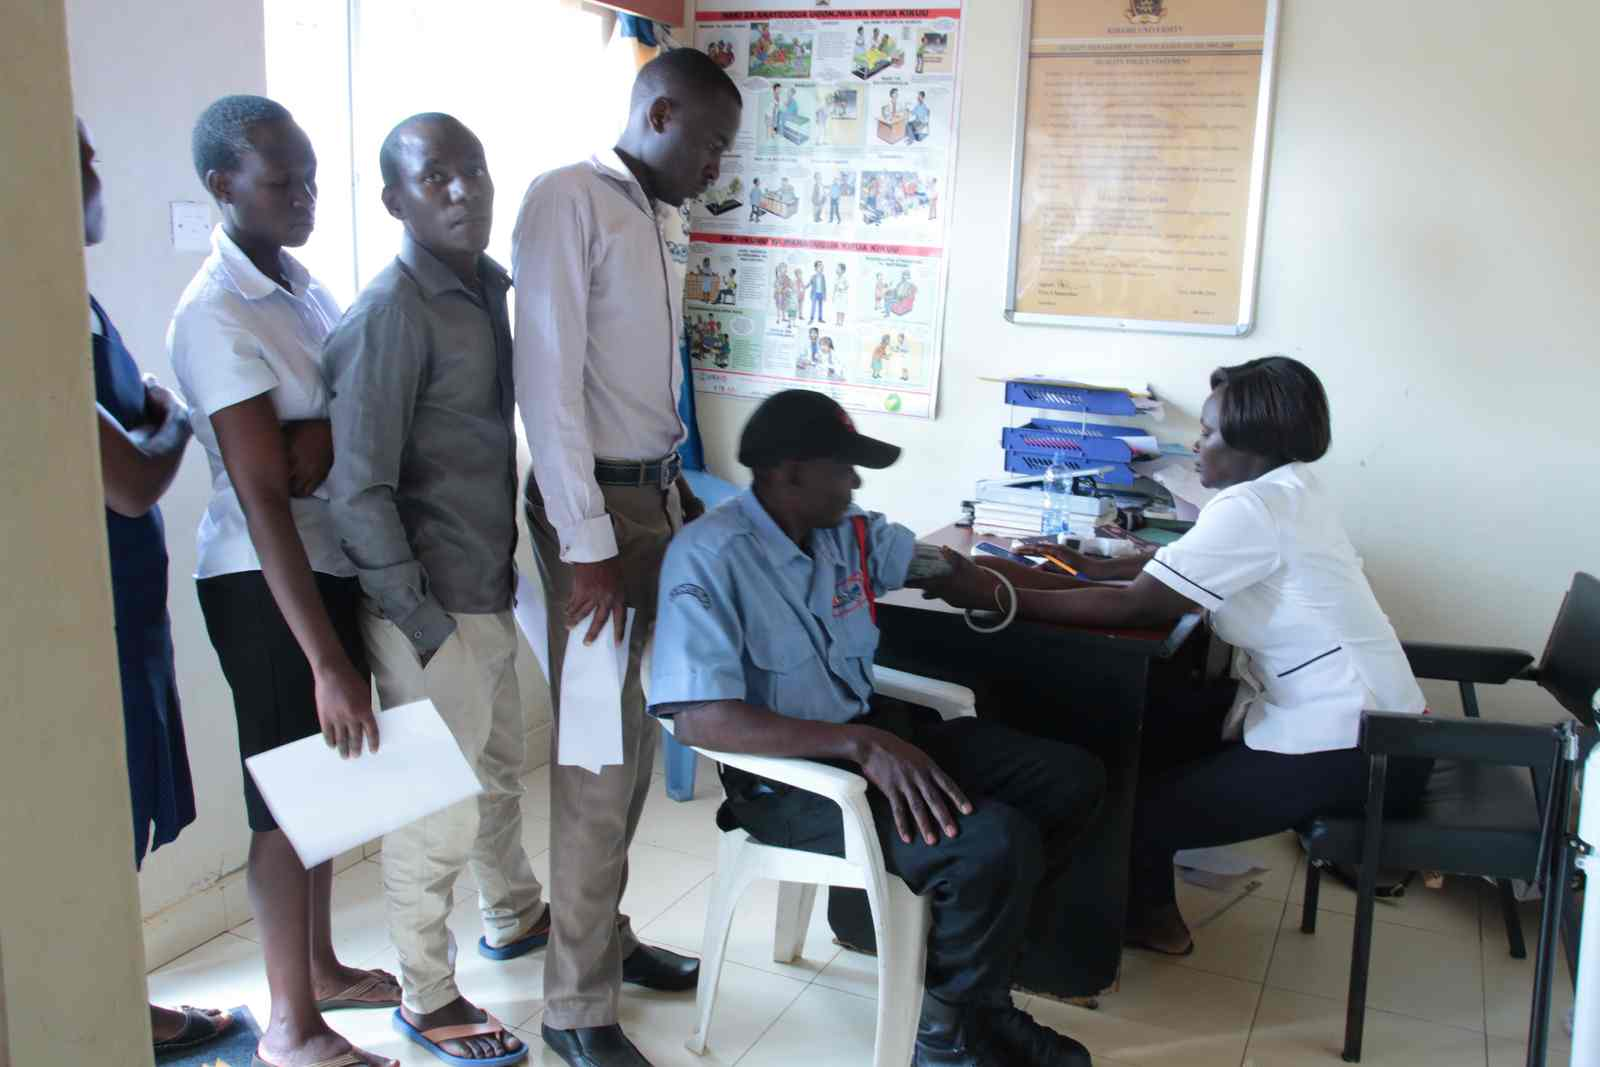 Successful Free Medical Service by Kibabii University and Red Cross